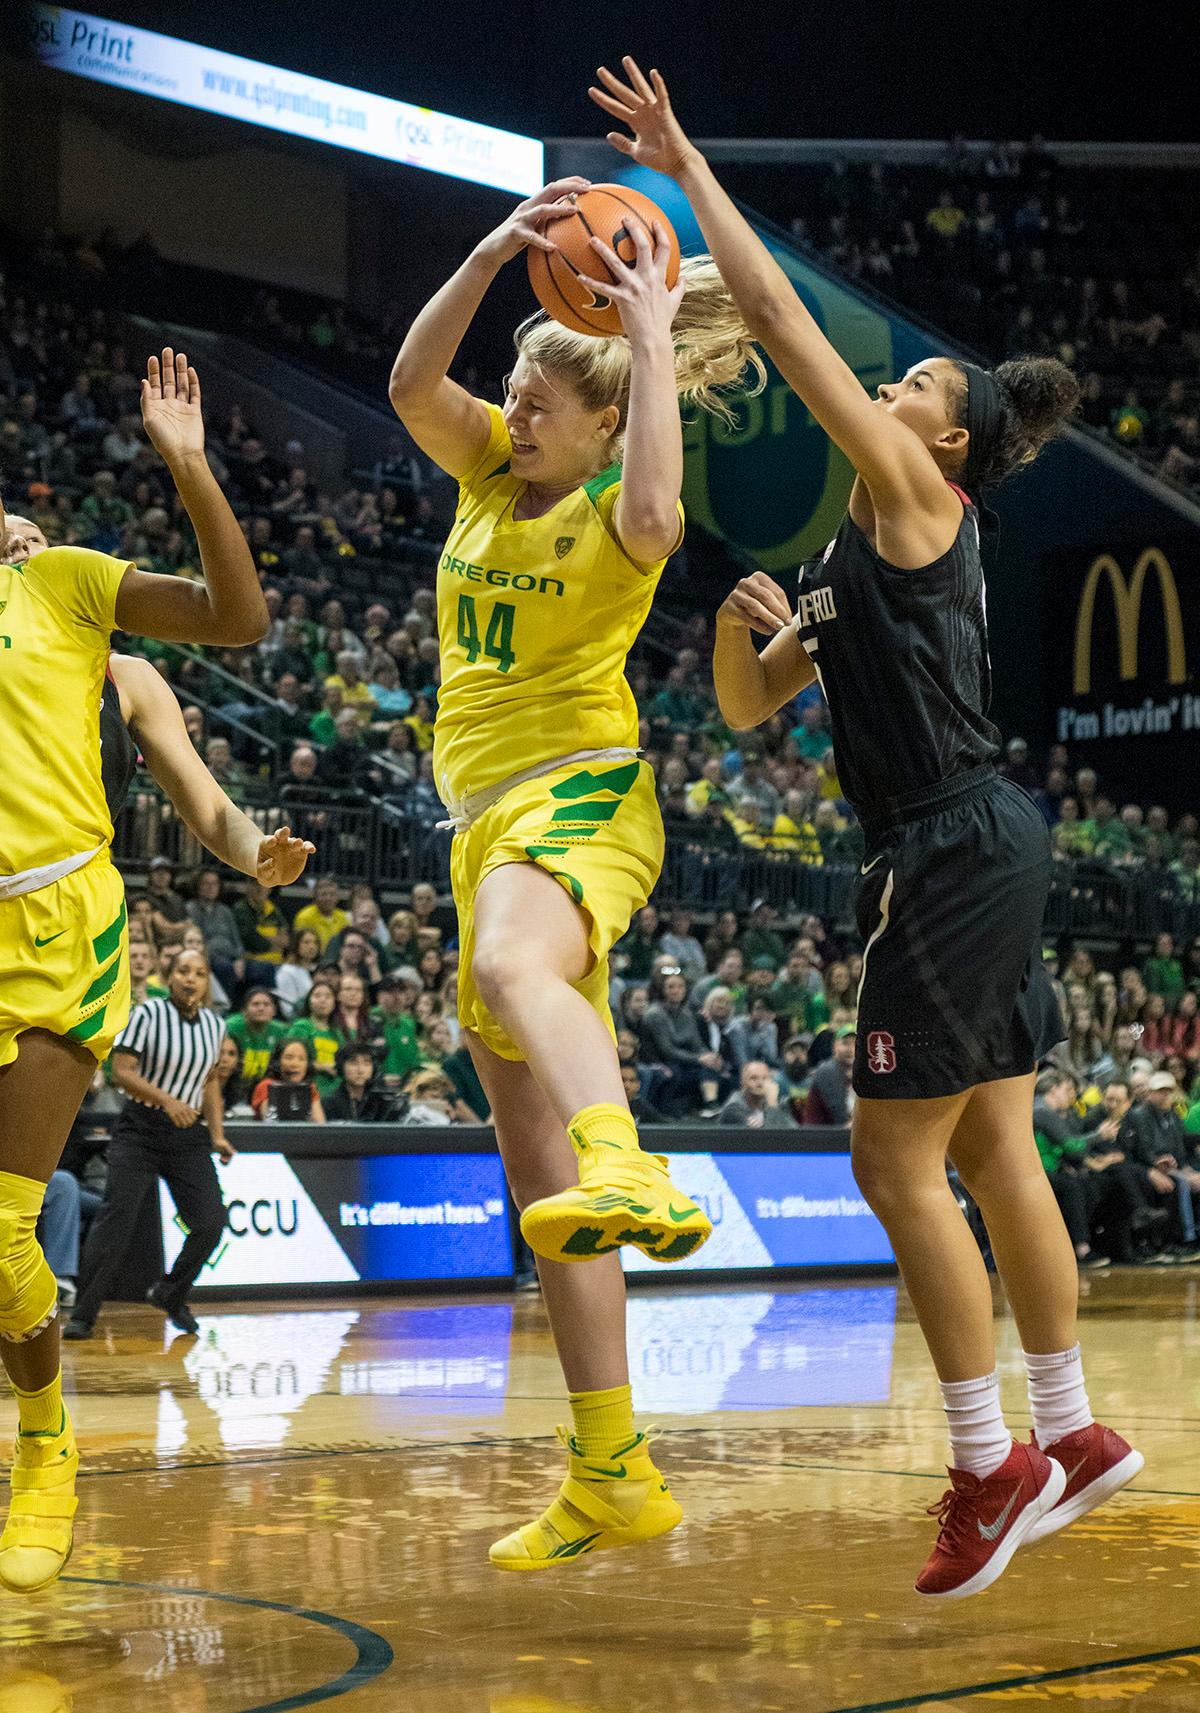 Oregon Ducks Mallory McGwire (#44) attempts to make her way to the basket past Stanford Cardinal defense. The Stanford Cardinal defeated the Oregon Ducks 78-65 on Sunday afternoon at Matthew Knight Arena. Stanford is now 10-2 in conference play and with this loss the Ducks drop to 10-2. Leading the Stanford Cardinal was Brittany McPhee with 33 points, Alanna Smith with 14 points, and Kiana Williams with 14 points. For the Ducks Sabrina Ionescu led with 22 points, Ruthy Hebard added 16 points, and Satou Sabally put in 14 points. Photo by Rhianna Gelhart, Oregon News Lab